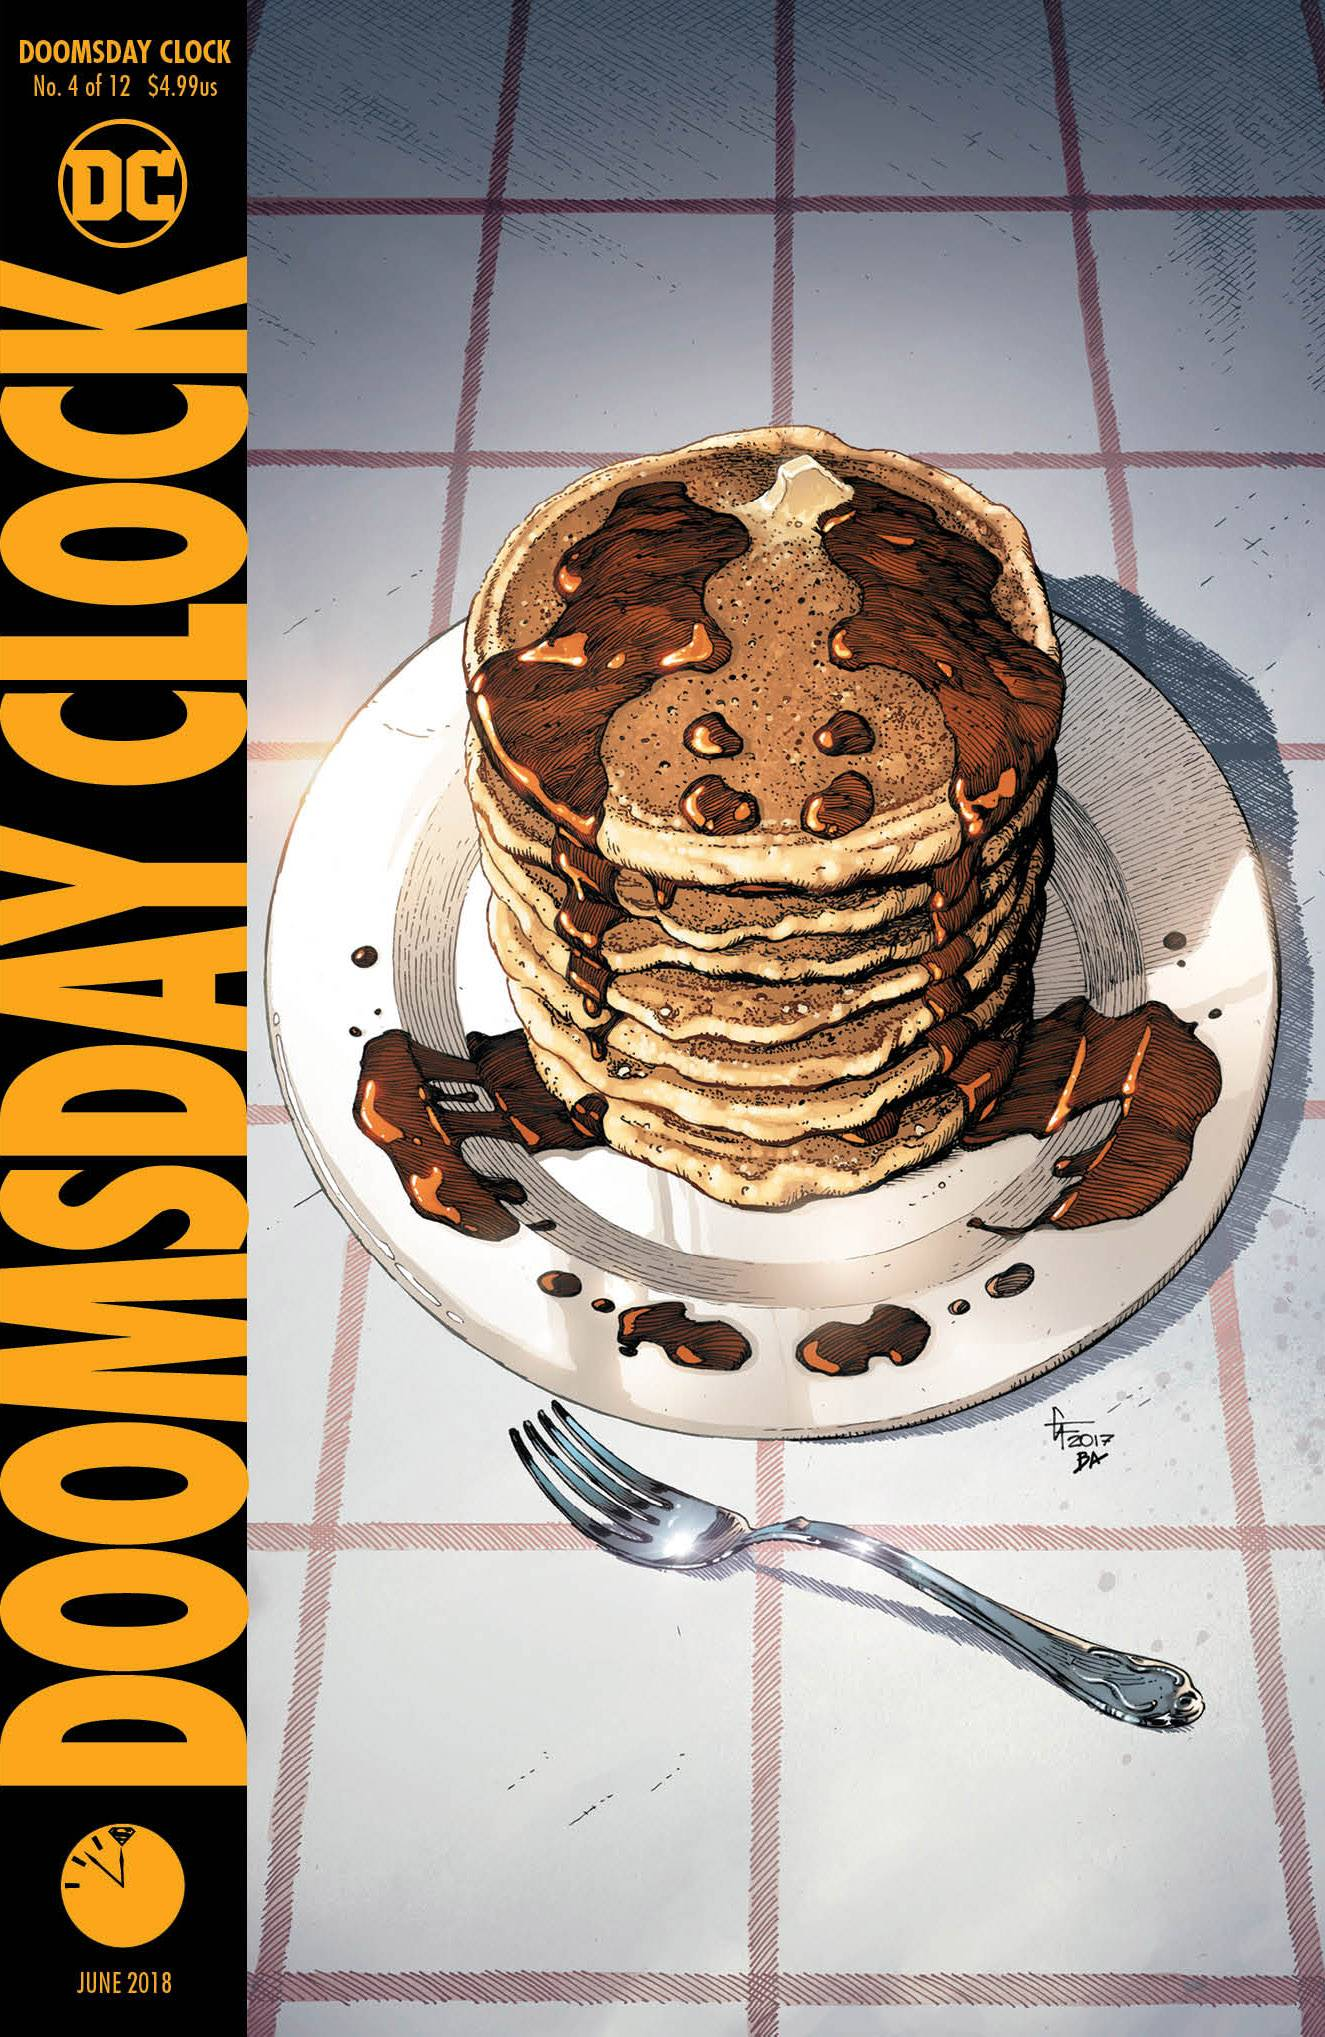 DOOMSDAY CLOCK #4 (OF 12)